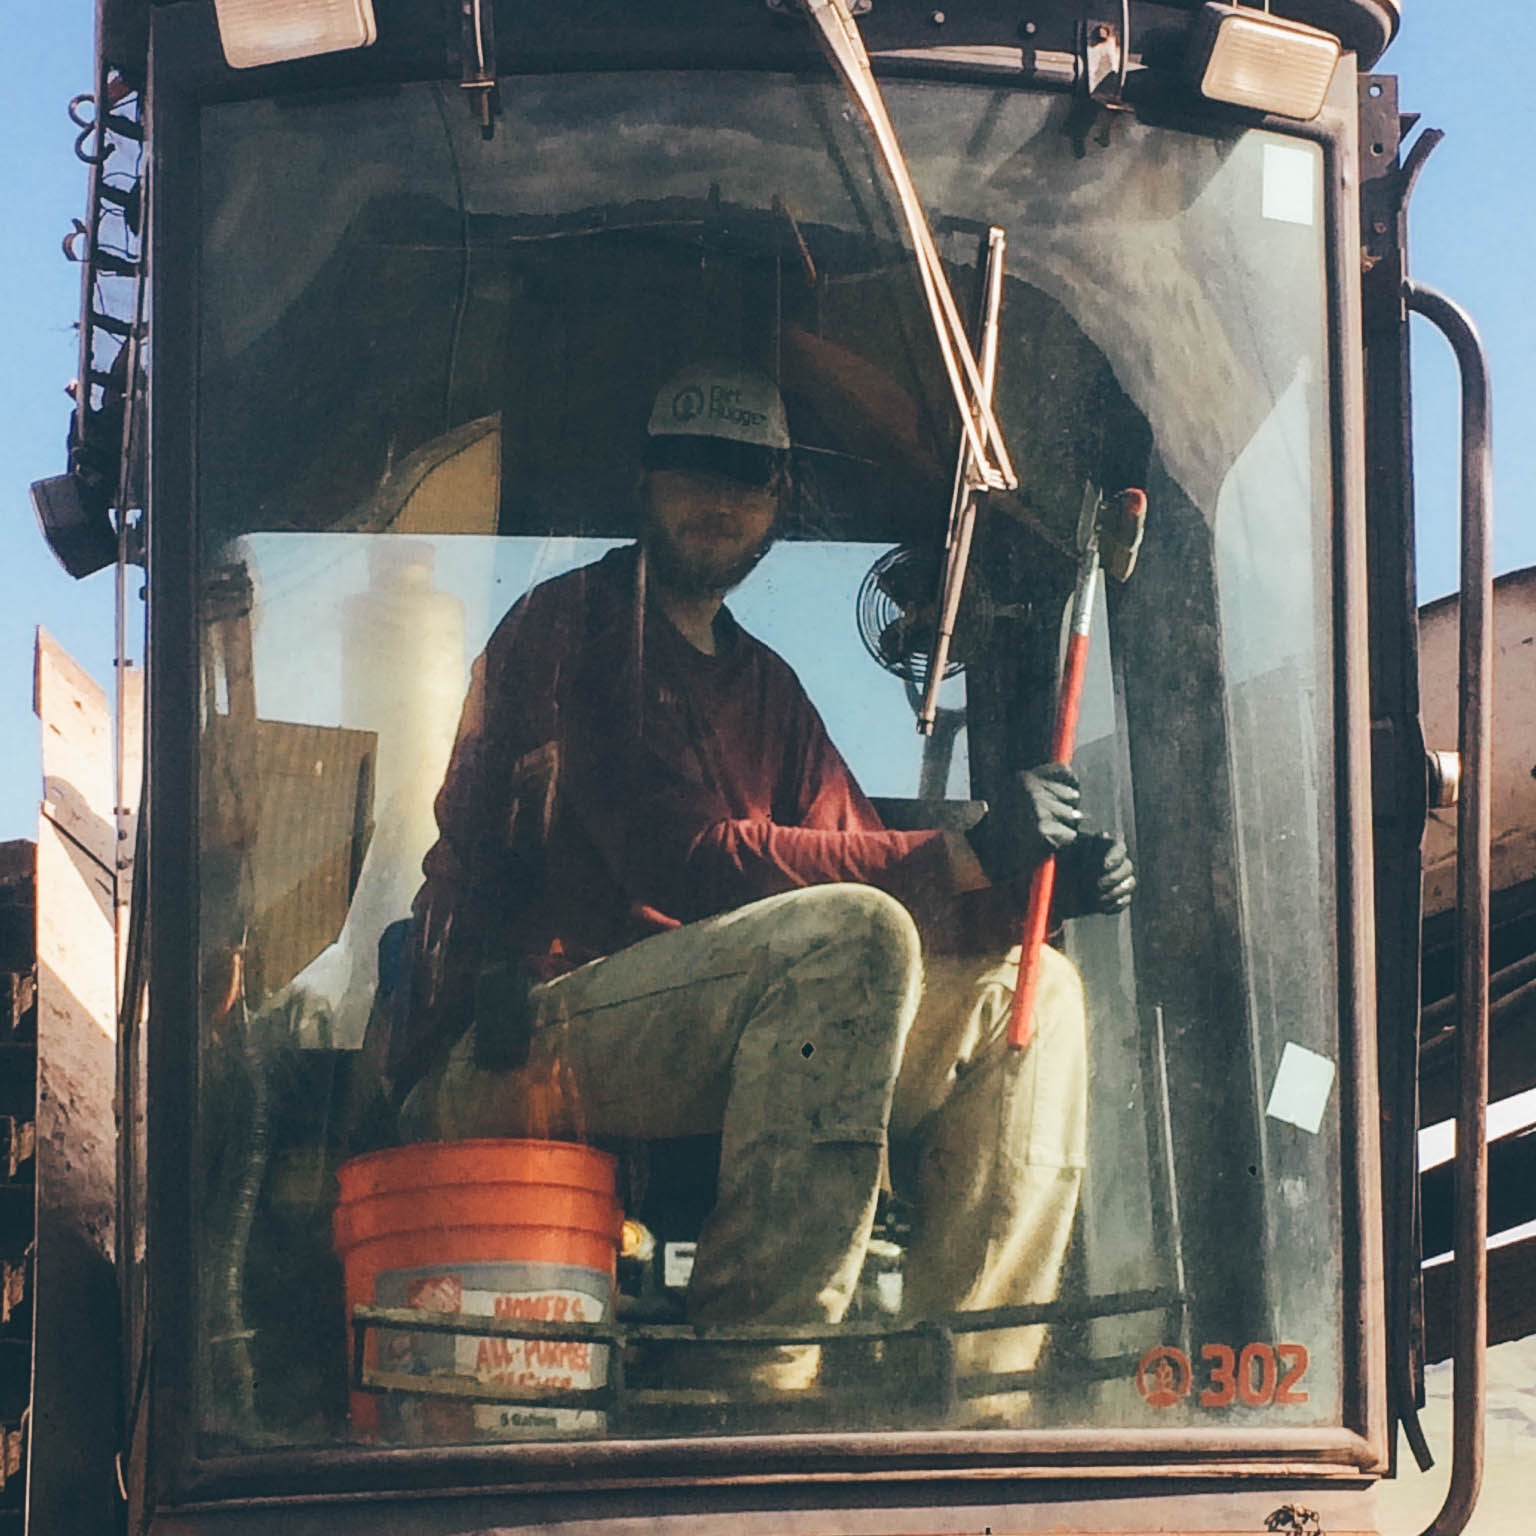 GAVIN SCHMIDT  / BLACK GOLD BANDIT  Working his way up the Dirt Hugger ranks, Gavin started out as a contamination picker and now finds himself manning the helm of a windrow turner. Additionally, Gavin is taking a lead on designing and implementing the landscape at the Dirt Hugger site. Gavin recently received a BS in Horticulture at OSU. His bag of knowledge has proven useful at Dirt Hugger where Gavin performs many of the necessary compost sample tests. Needless to say, the realm of compost is right up Gavin's alley–he spends his free time working on sustainable gardening and permaculture site design projects.